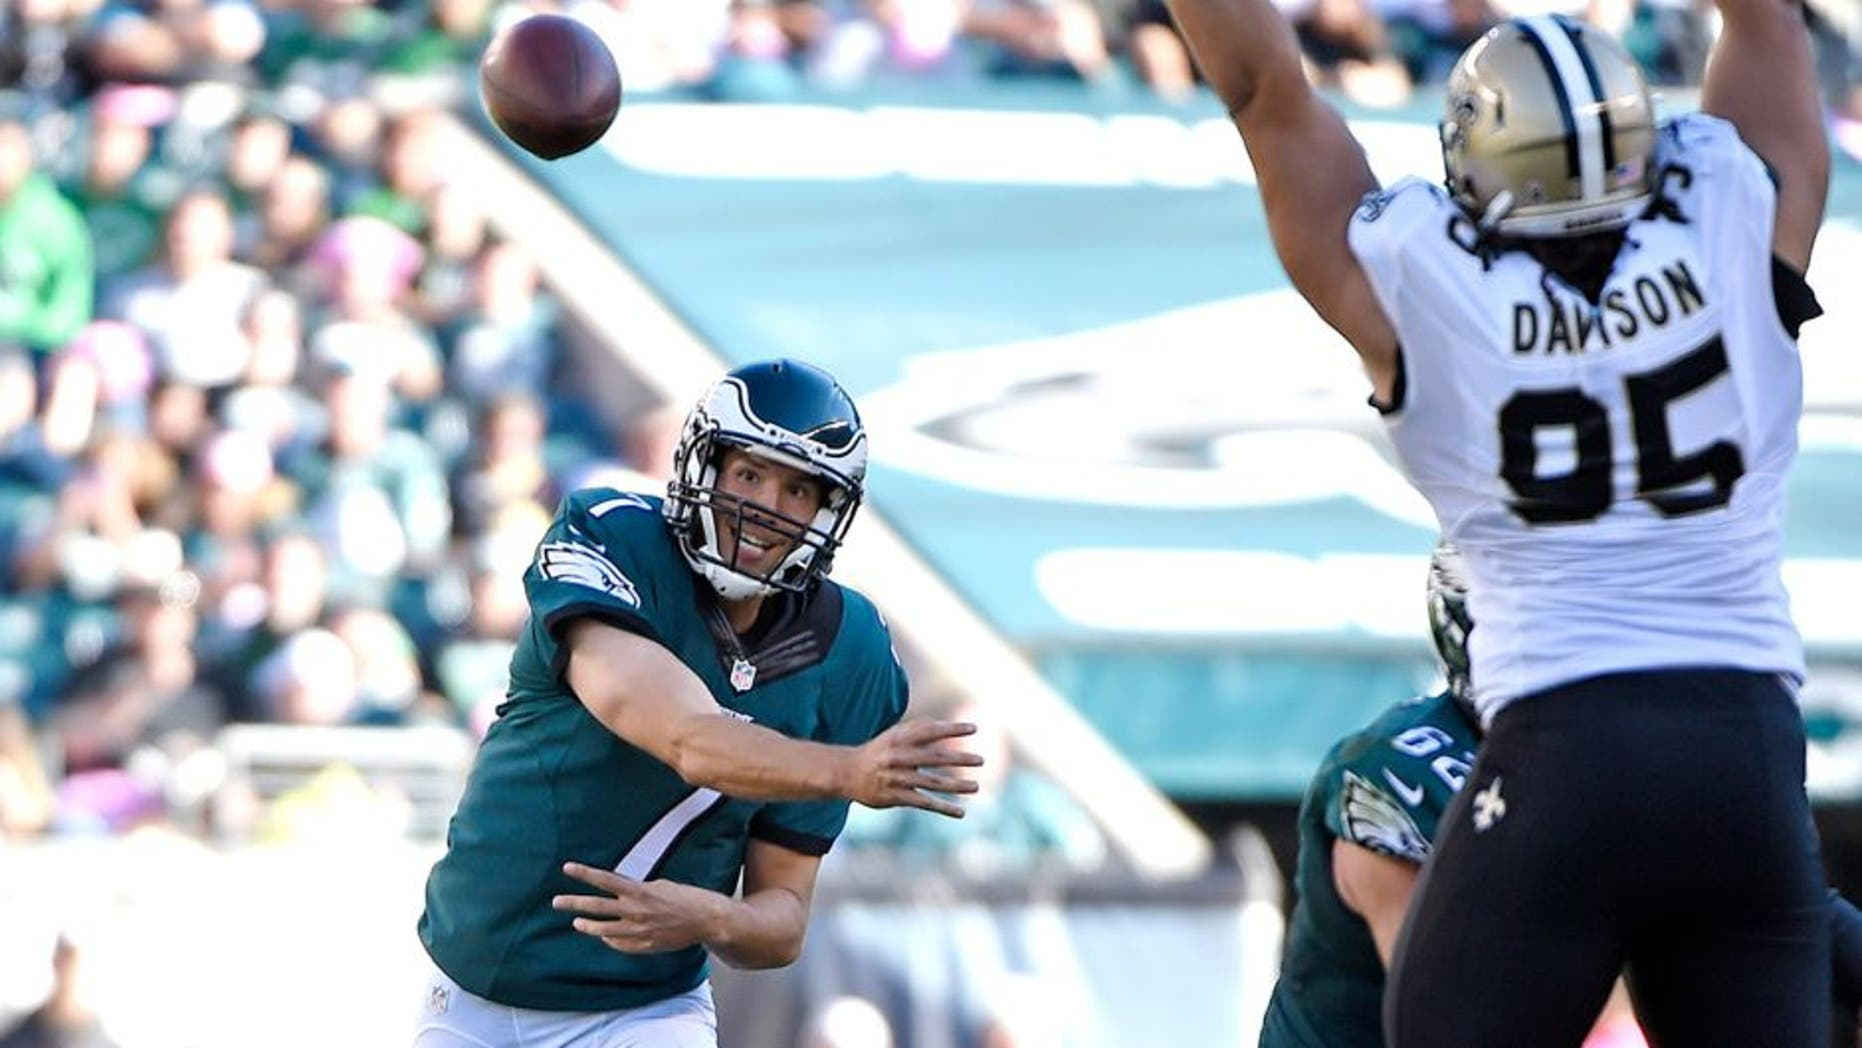 Oct 11, 2015; Philadelphia, PA, USA; Philadelphia Eagles quarterback Sam Bradford (7) throws a pass during the third quarter against the New Orleans Saints at Lincoln Financial Field. The Eagles defeated the Saints, 39-17. Mandatory Credit: Eric Hartline-USA TODAY Sports